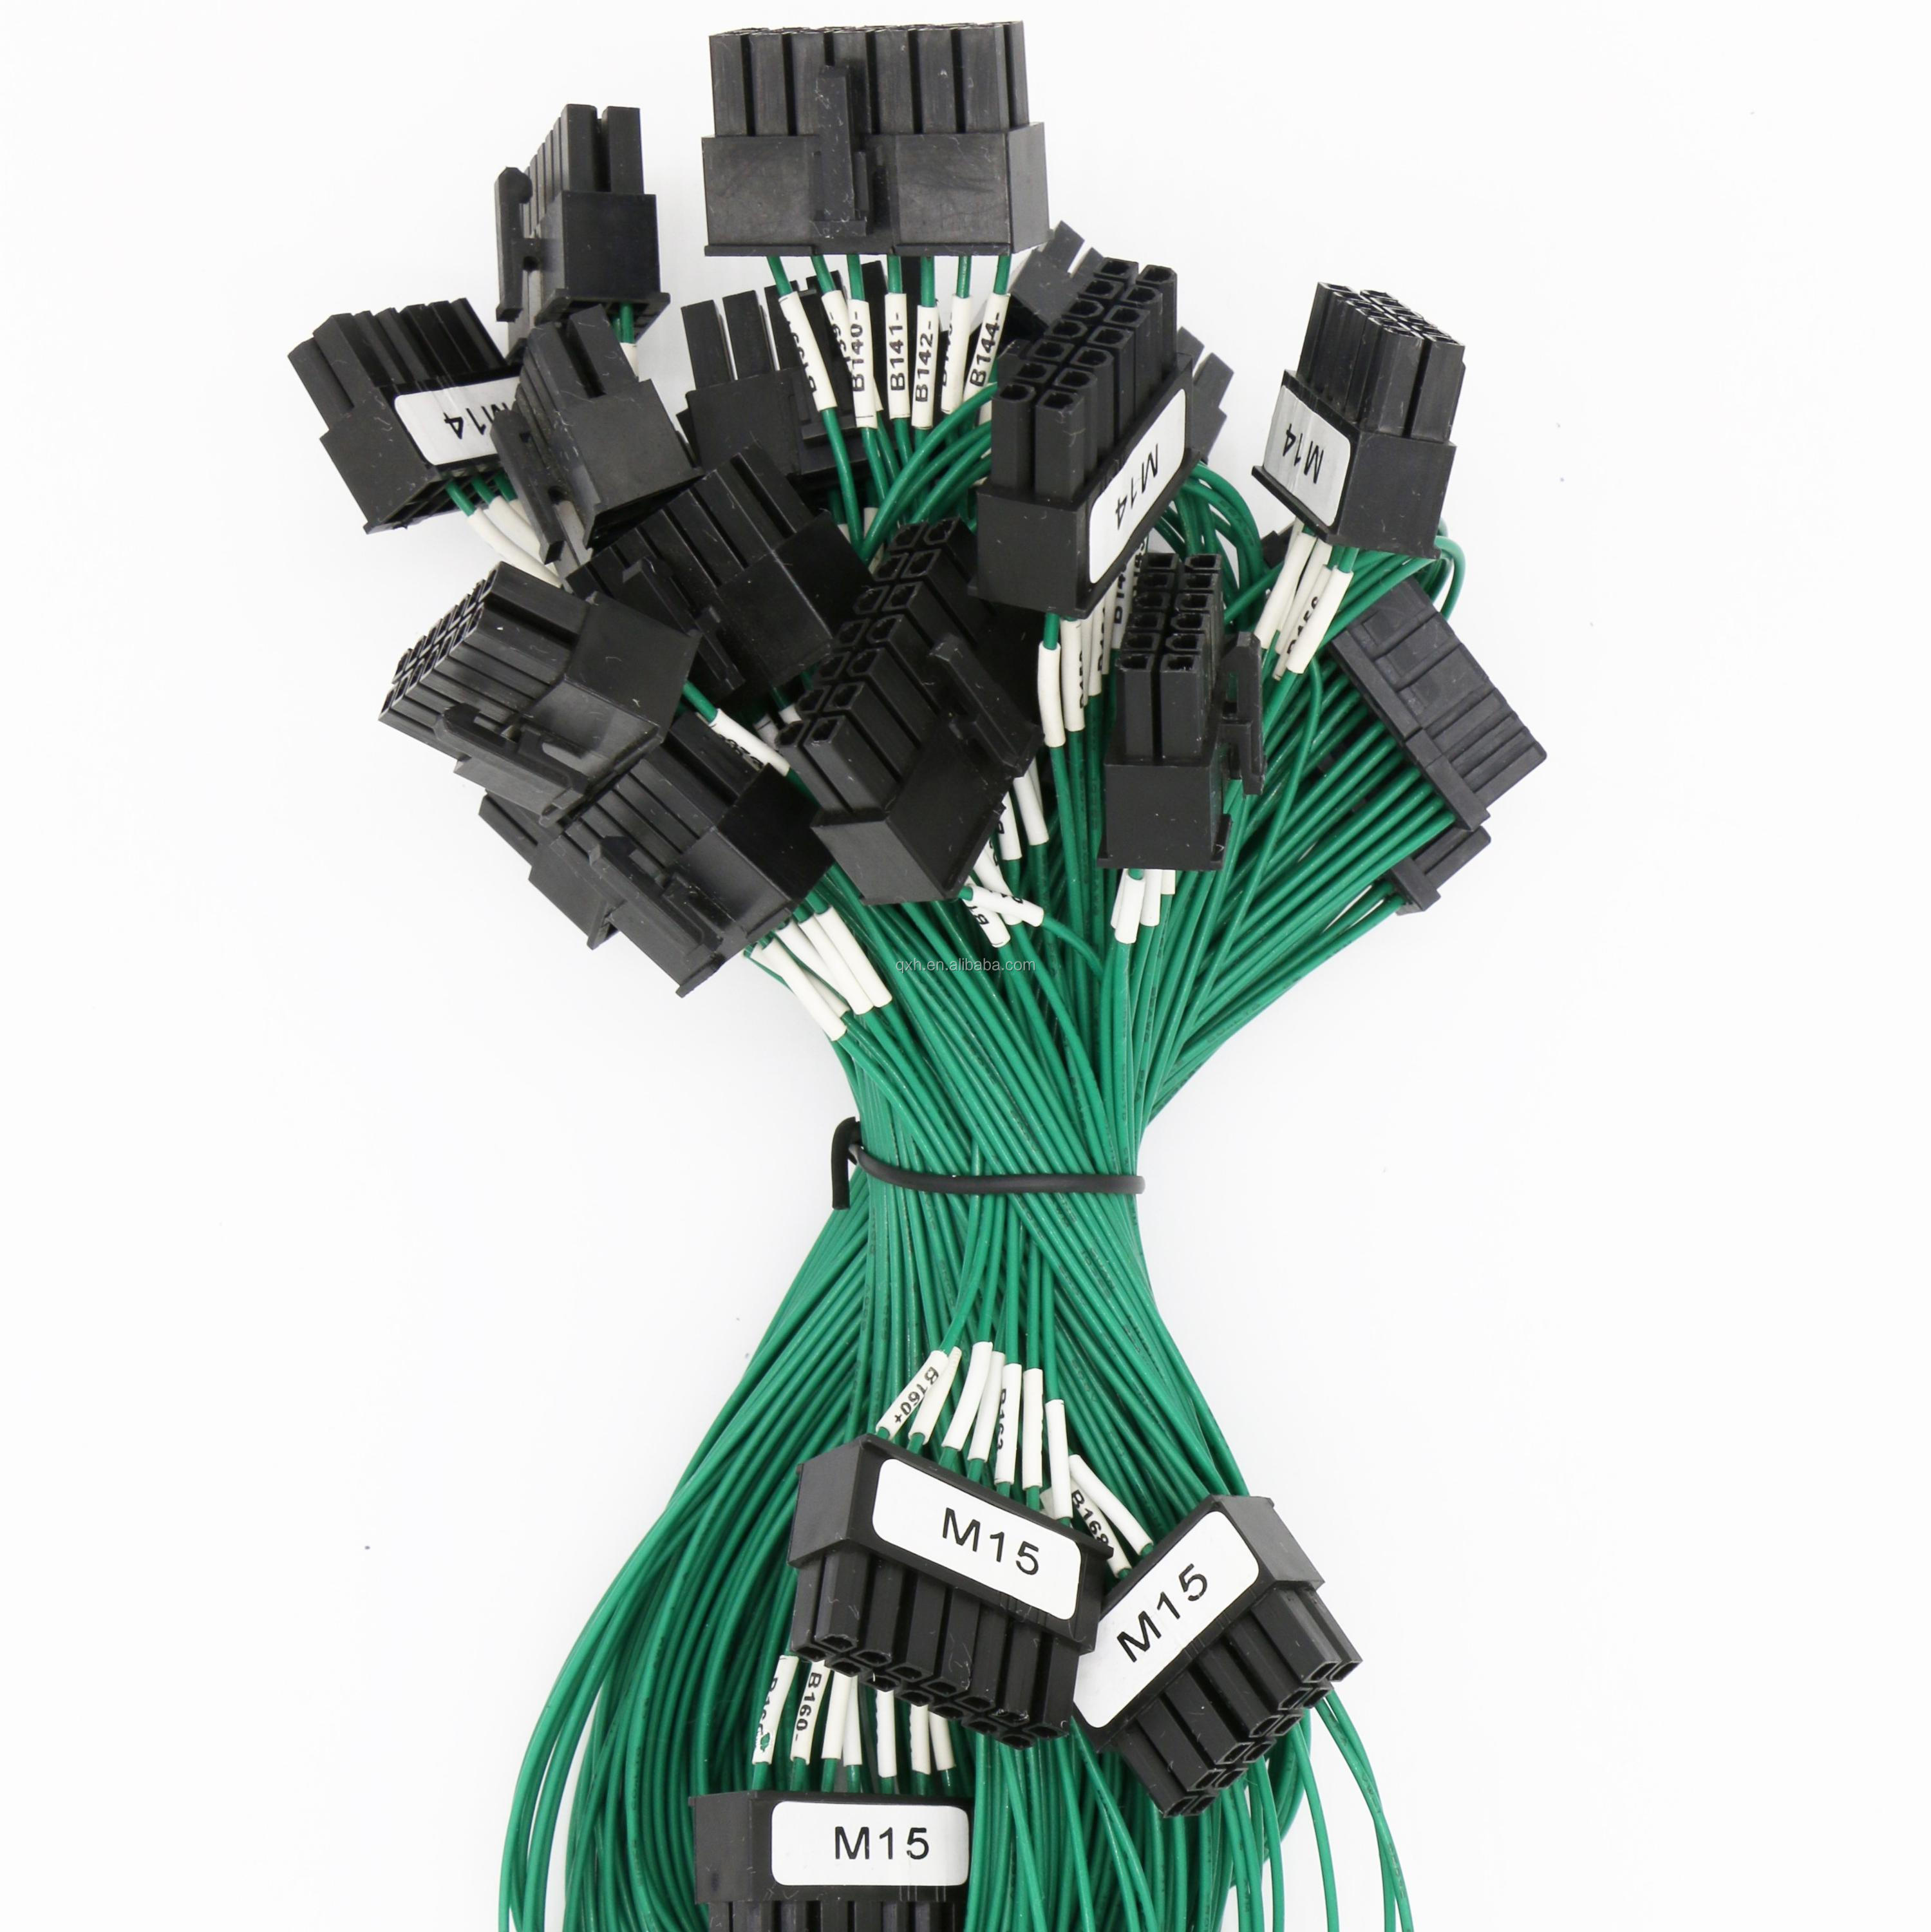 Phenomenal Factory Pvc Insulation Wires For Customized Auto Car Wiring Wiring Digital Resources Bioskbiperorg